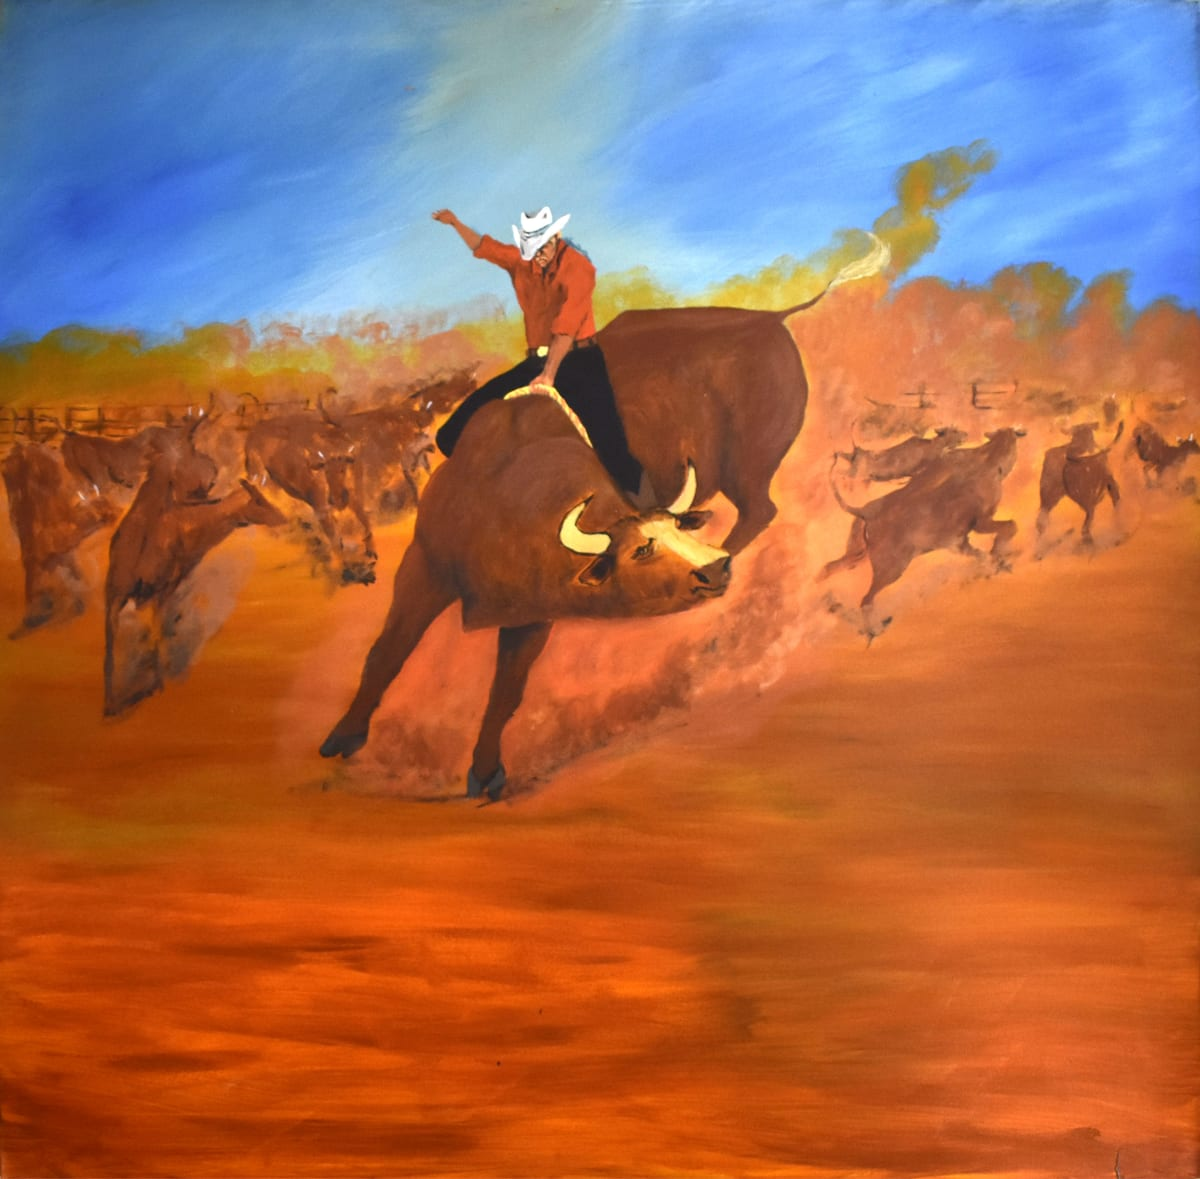 Mervyn Street Ride the Bull, 2018 Acrylic on canvas 118 x 120 cm